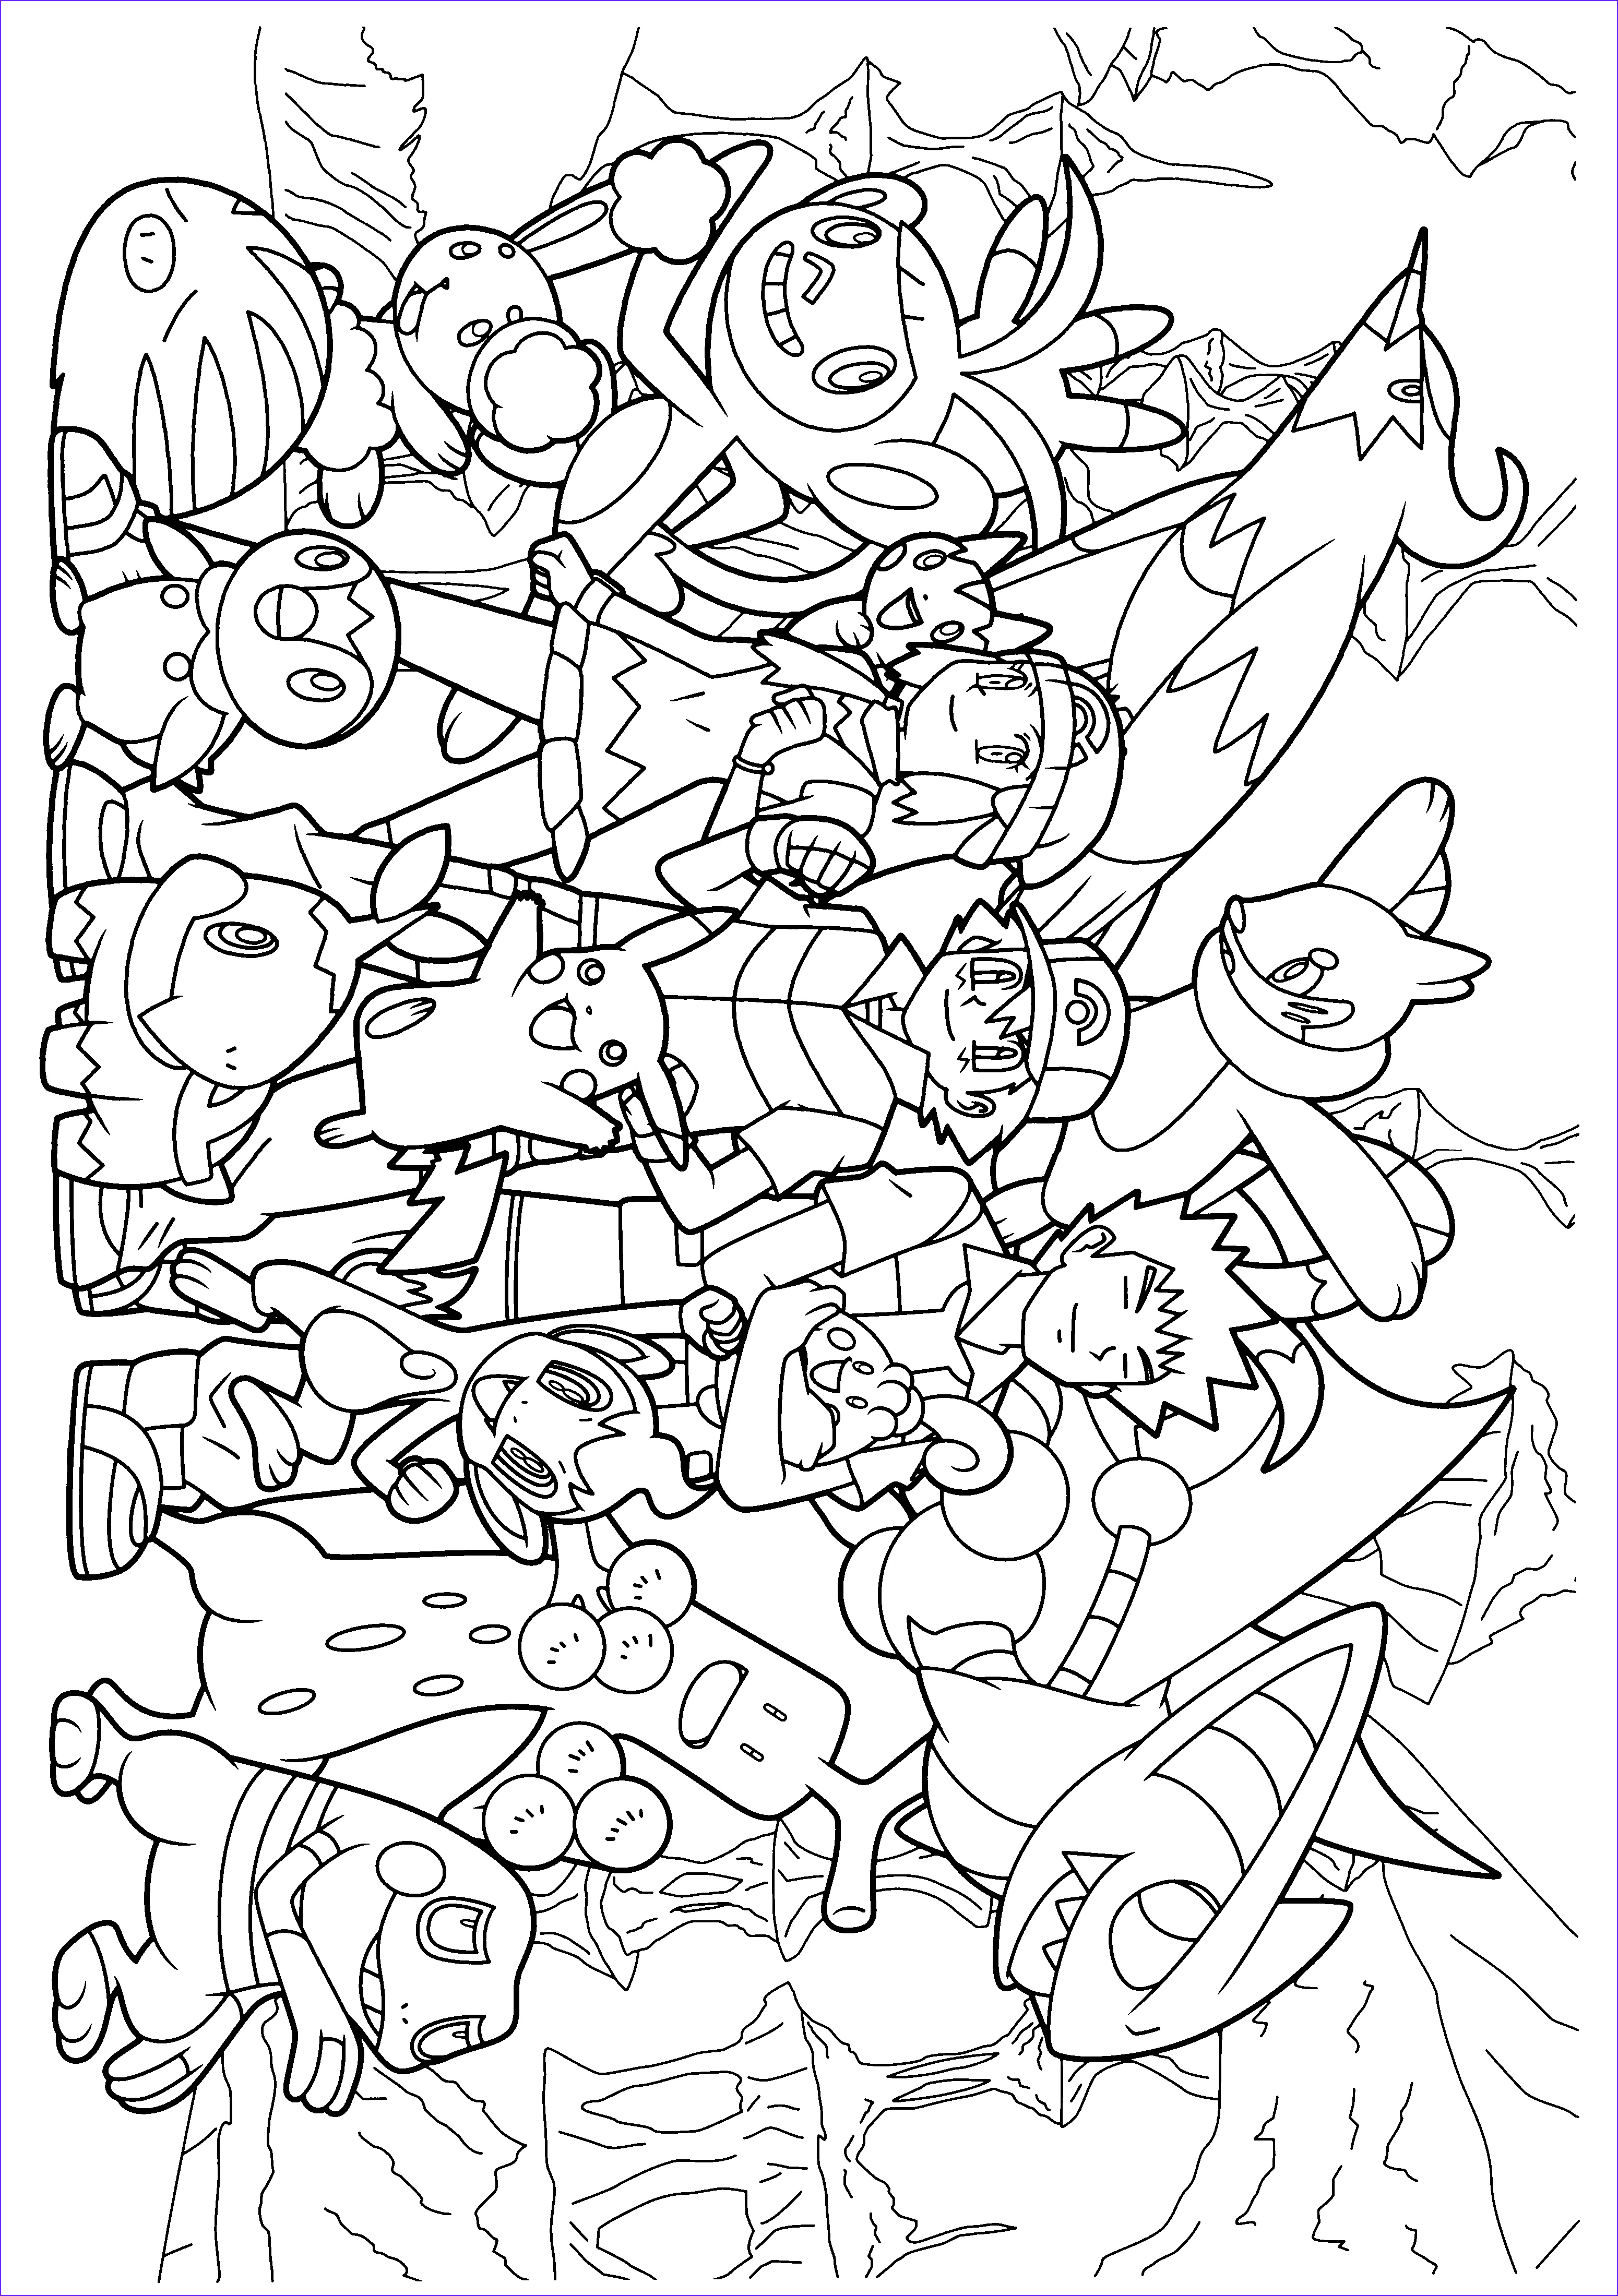 Pokemon Coloring Pages Awesome Stock Pin by nora forbus On Stensiling orprintable Stuff